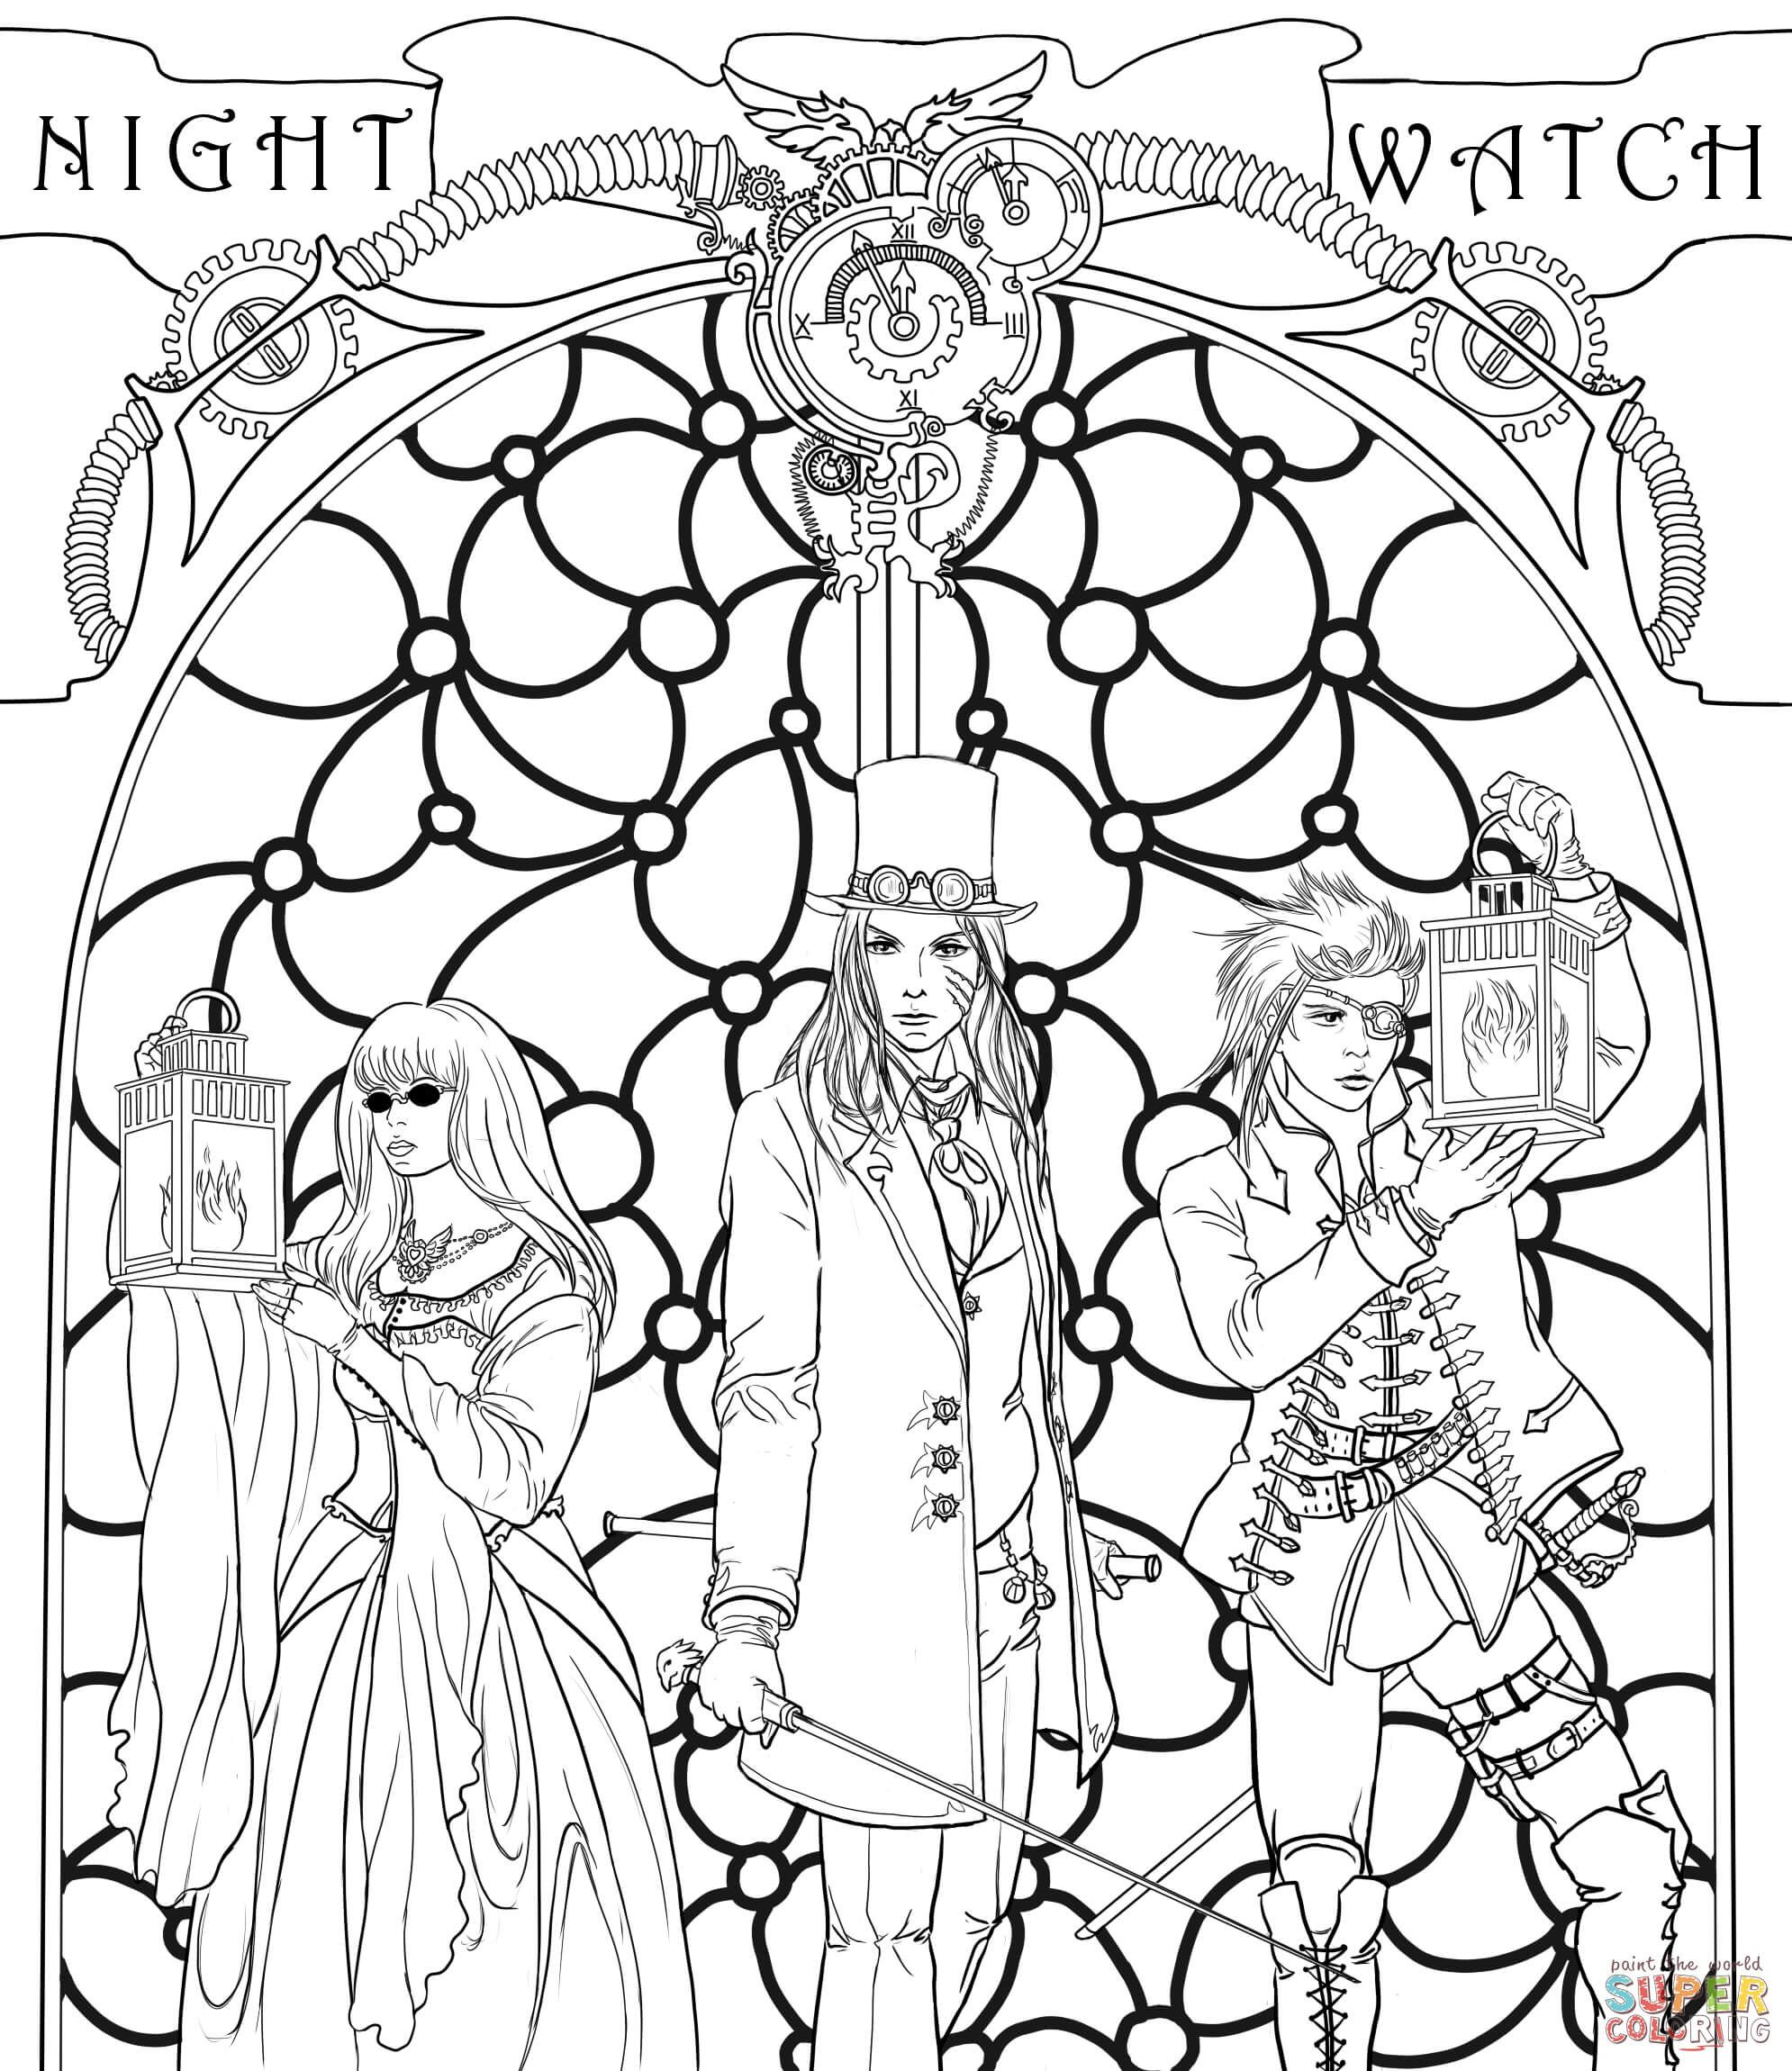 Steampunk Night Watch Crew | Super Coloring | Coloring Pages-Fantasy ...